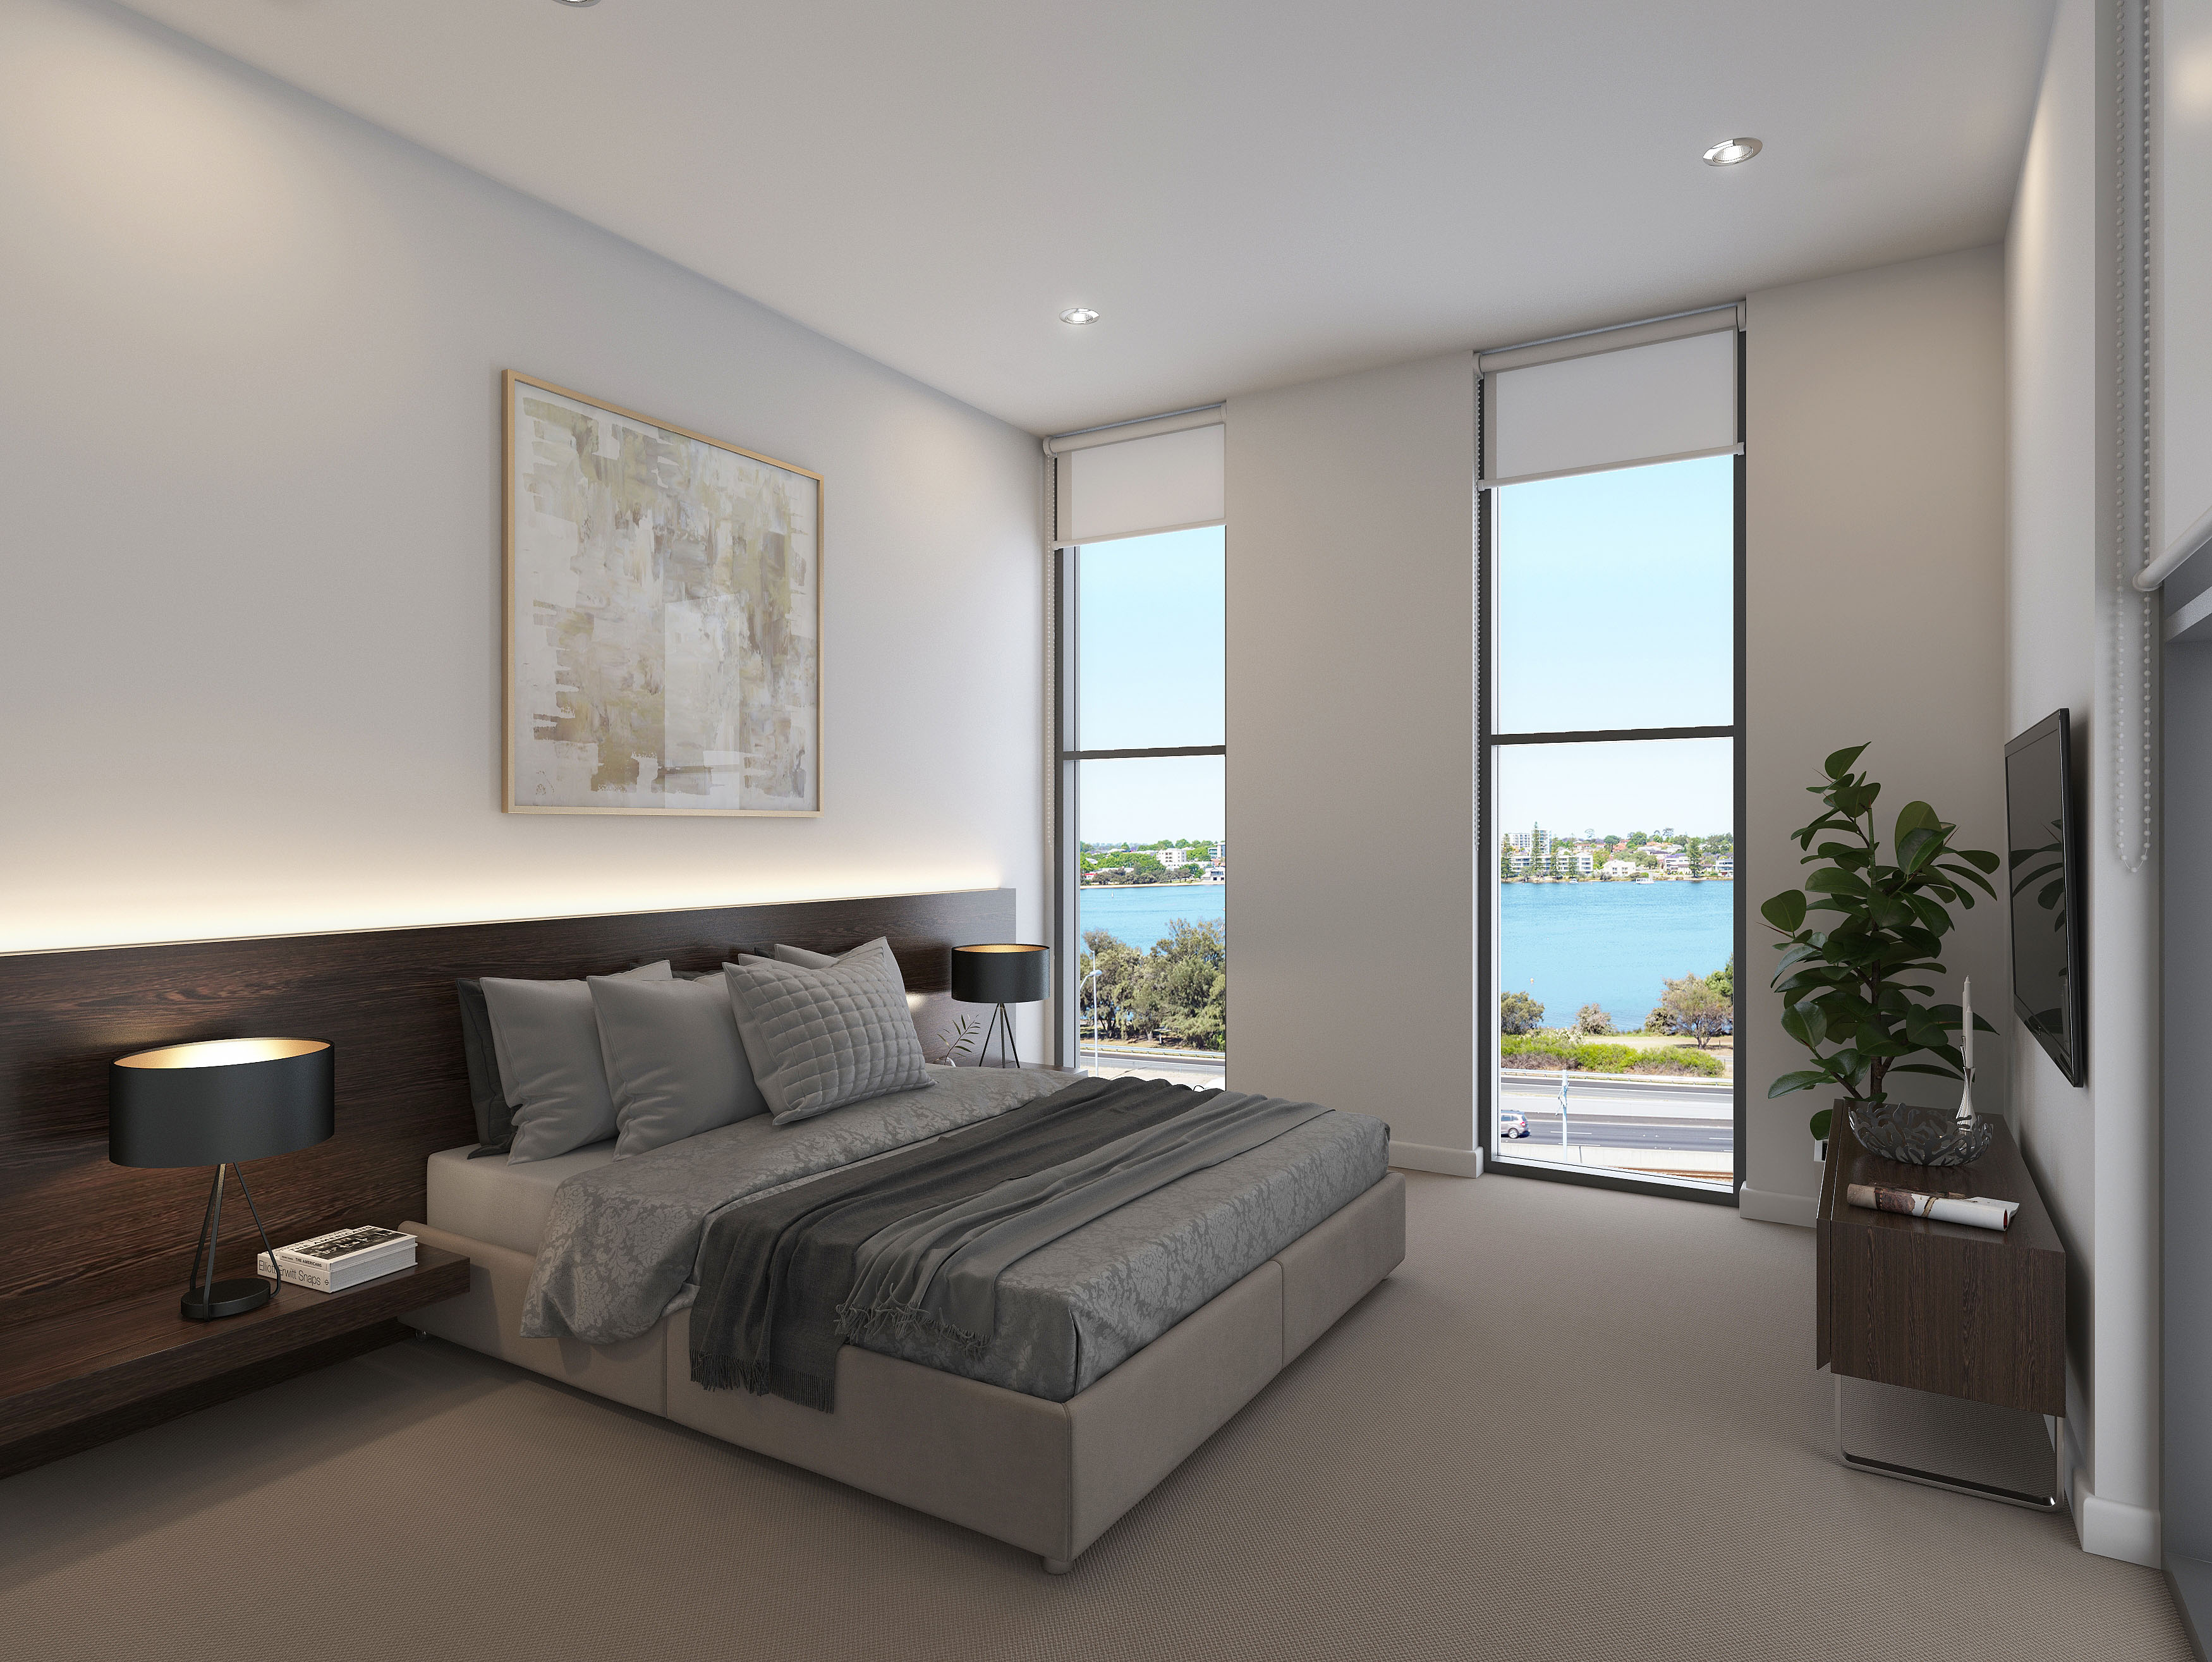 6_-_Interior_-_Bedroom_-_Low_Res[1]